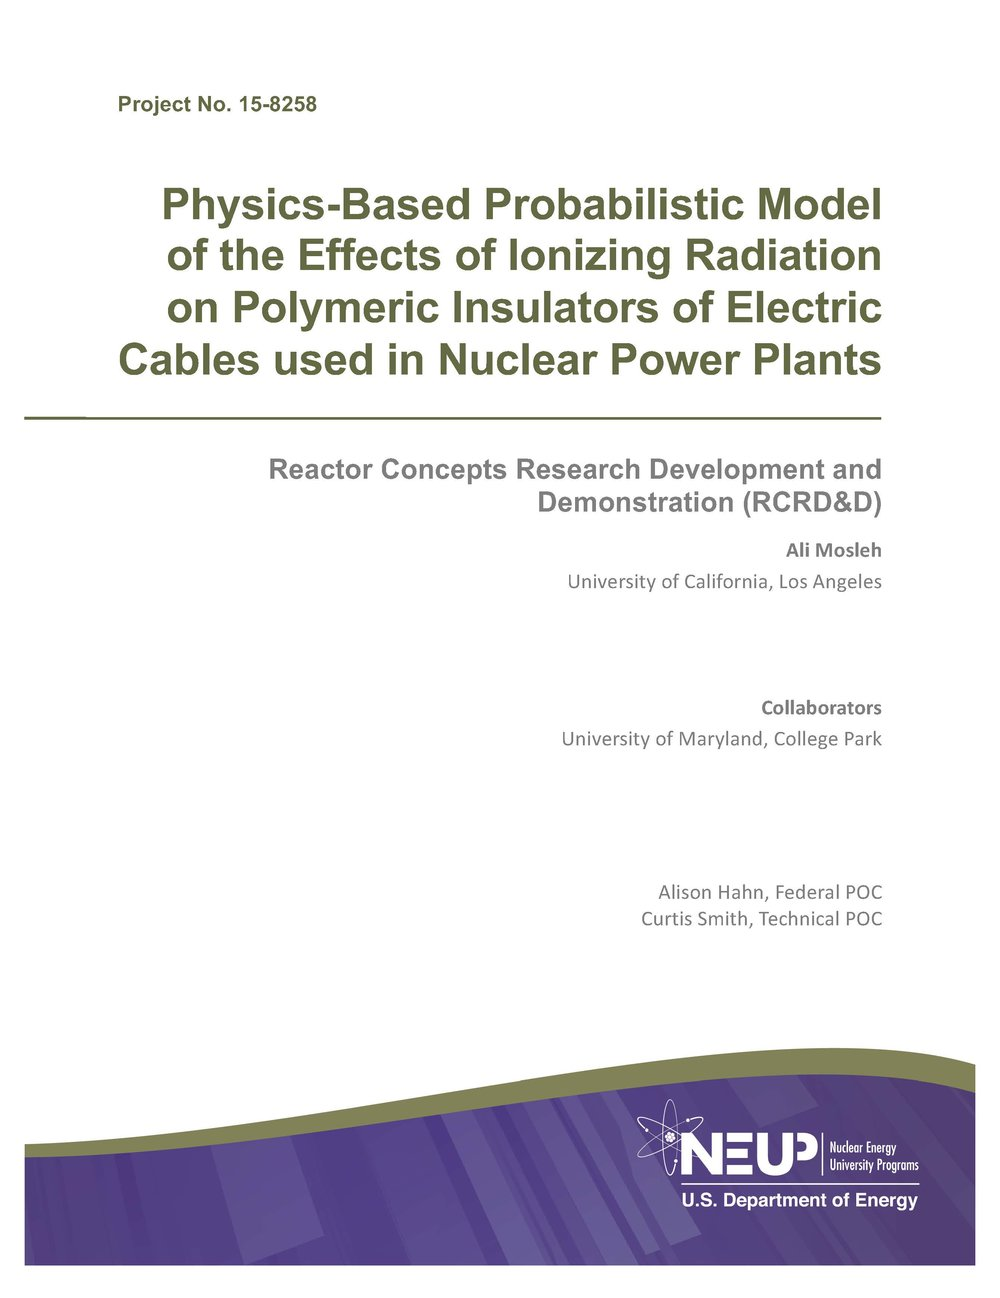 Physics- Based Probabilistic Model of the Effects of Ionizing Radiation on Polymeric Insulators of Electric Cables used in Nuclear Power Plants, Yuan- Shang Chang and Ali Mosleh, University of California Los Angeles. Published by U.S. Department of Energy. 30 January 2019.